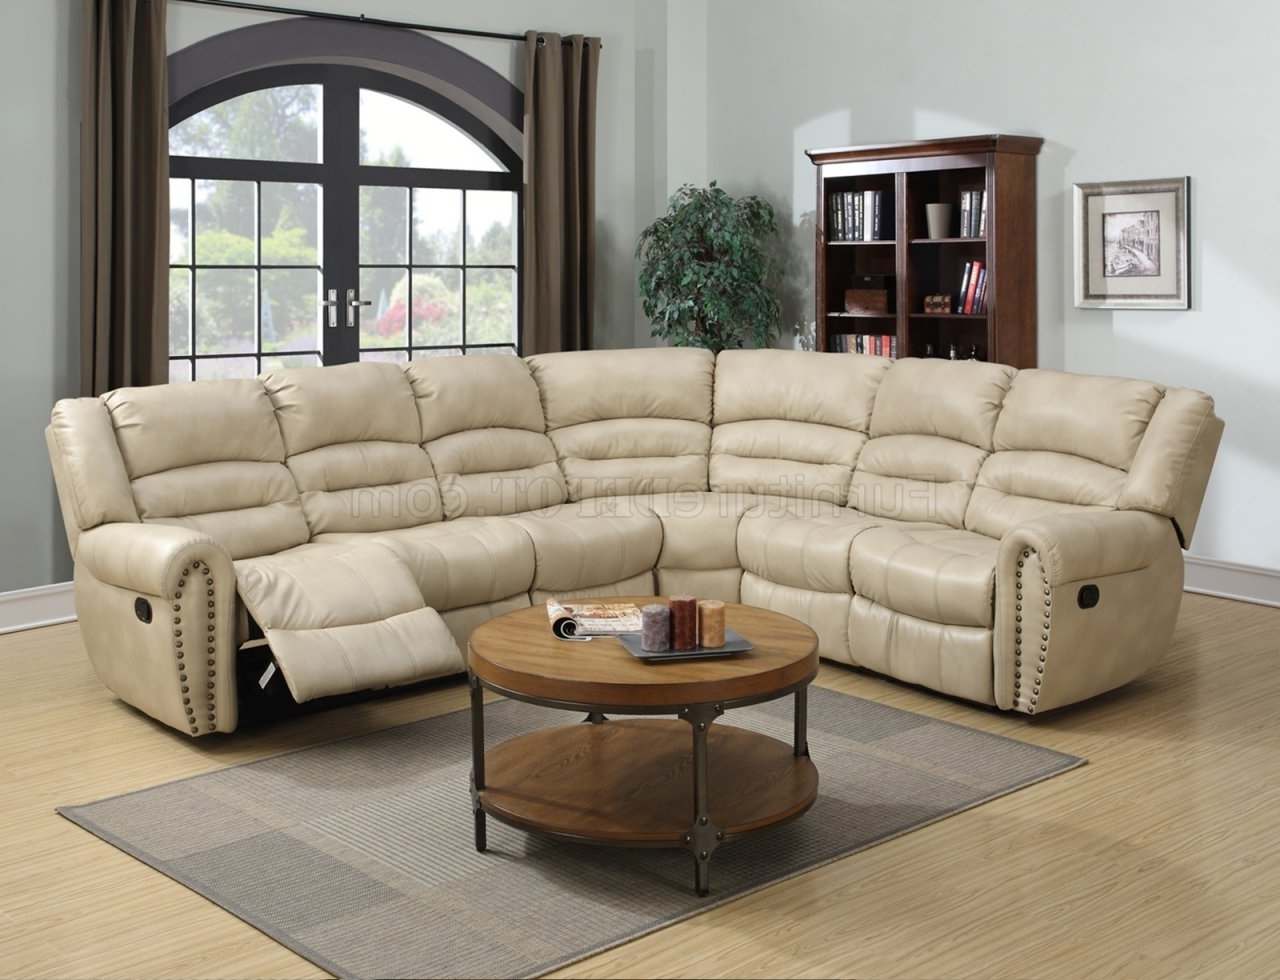 G687 Motion Sectional Sofa In Beige Bonded Leatherglory Within Widely Used Motion Sectional Sofas (View 4 of 15)